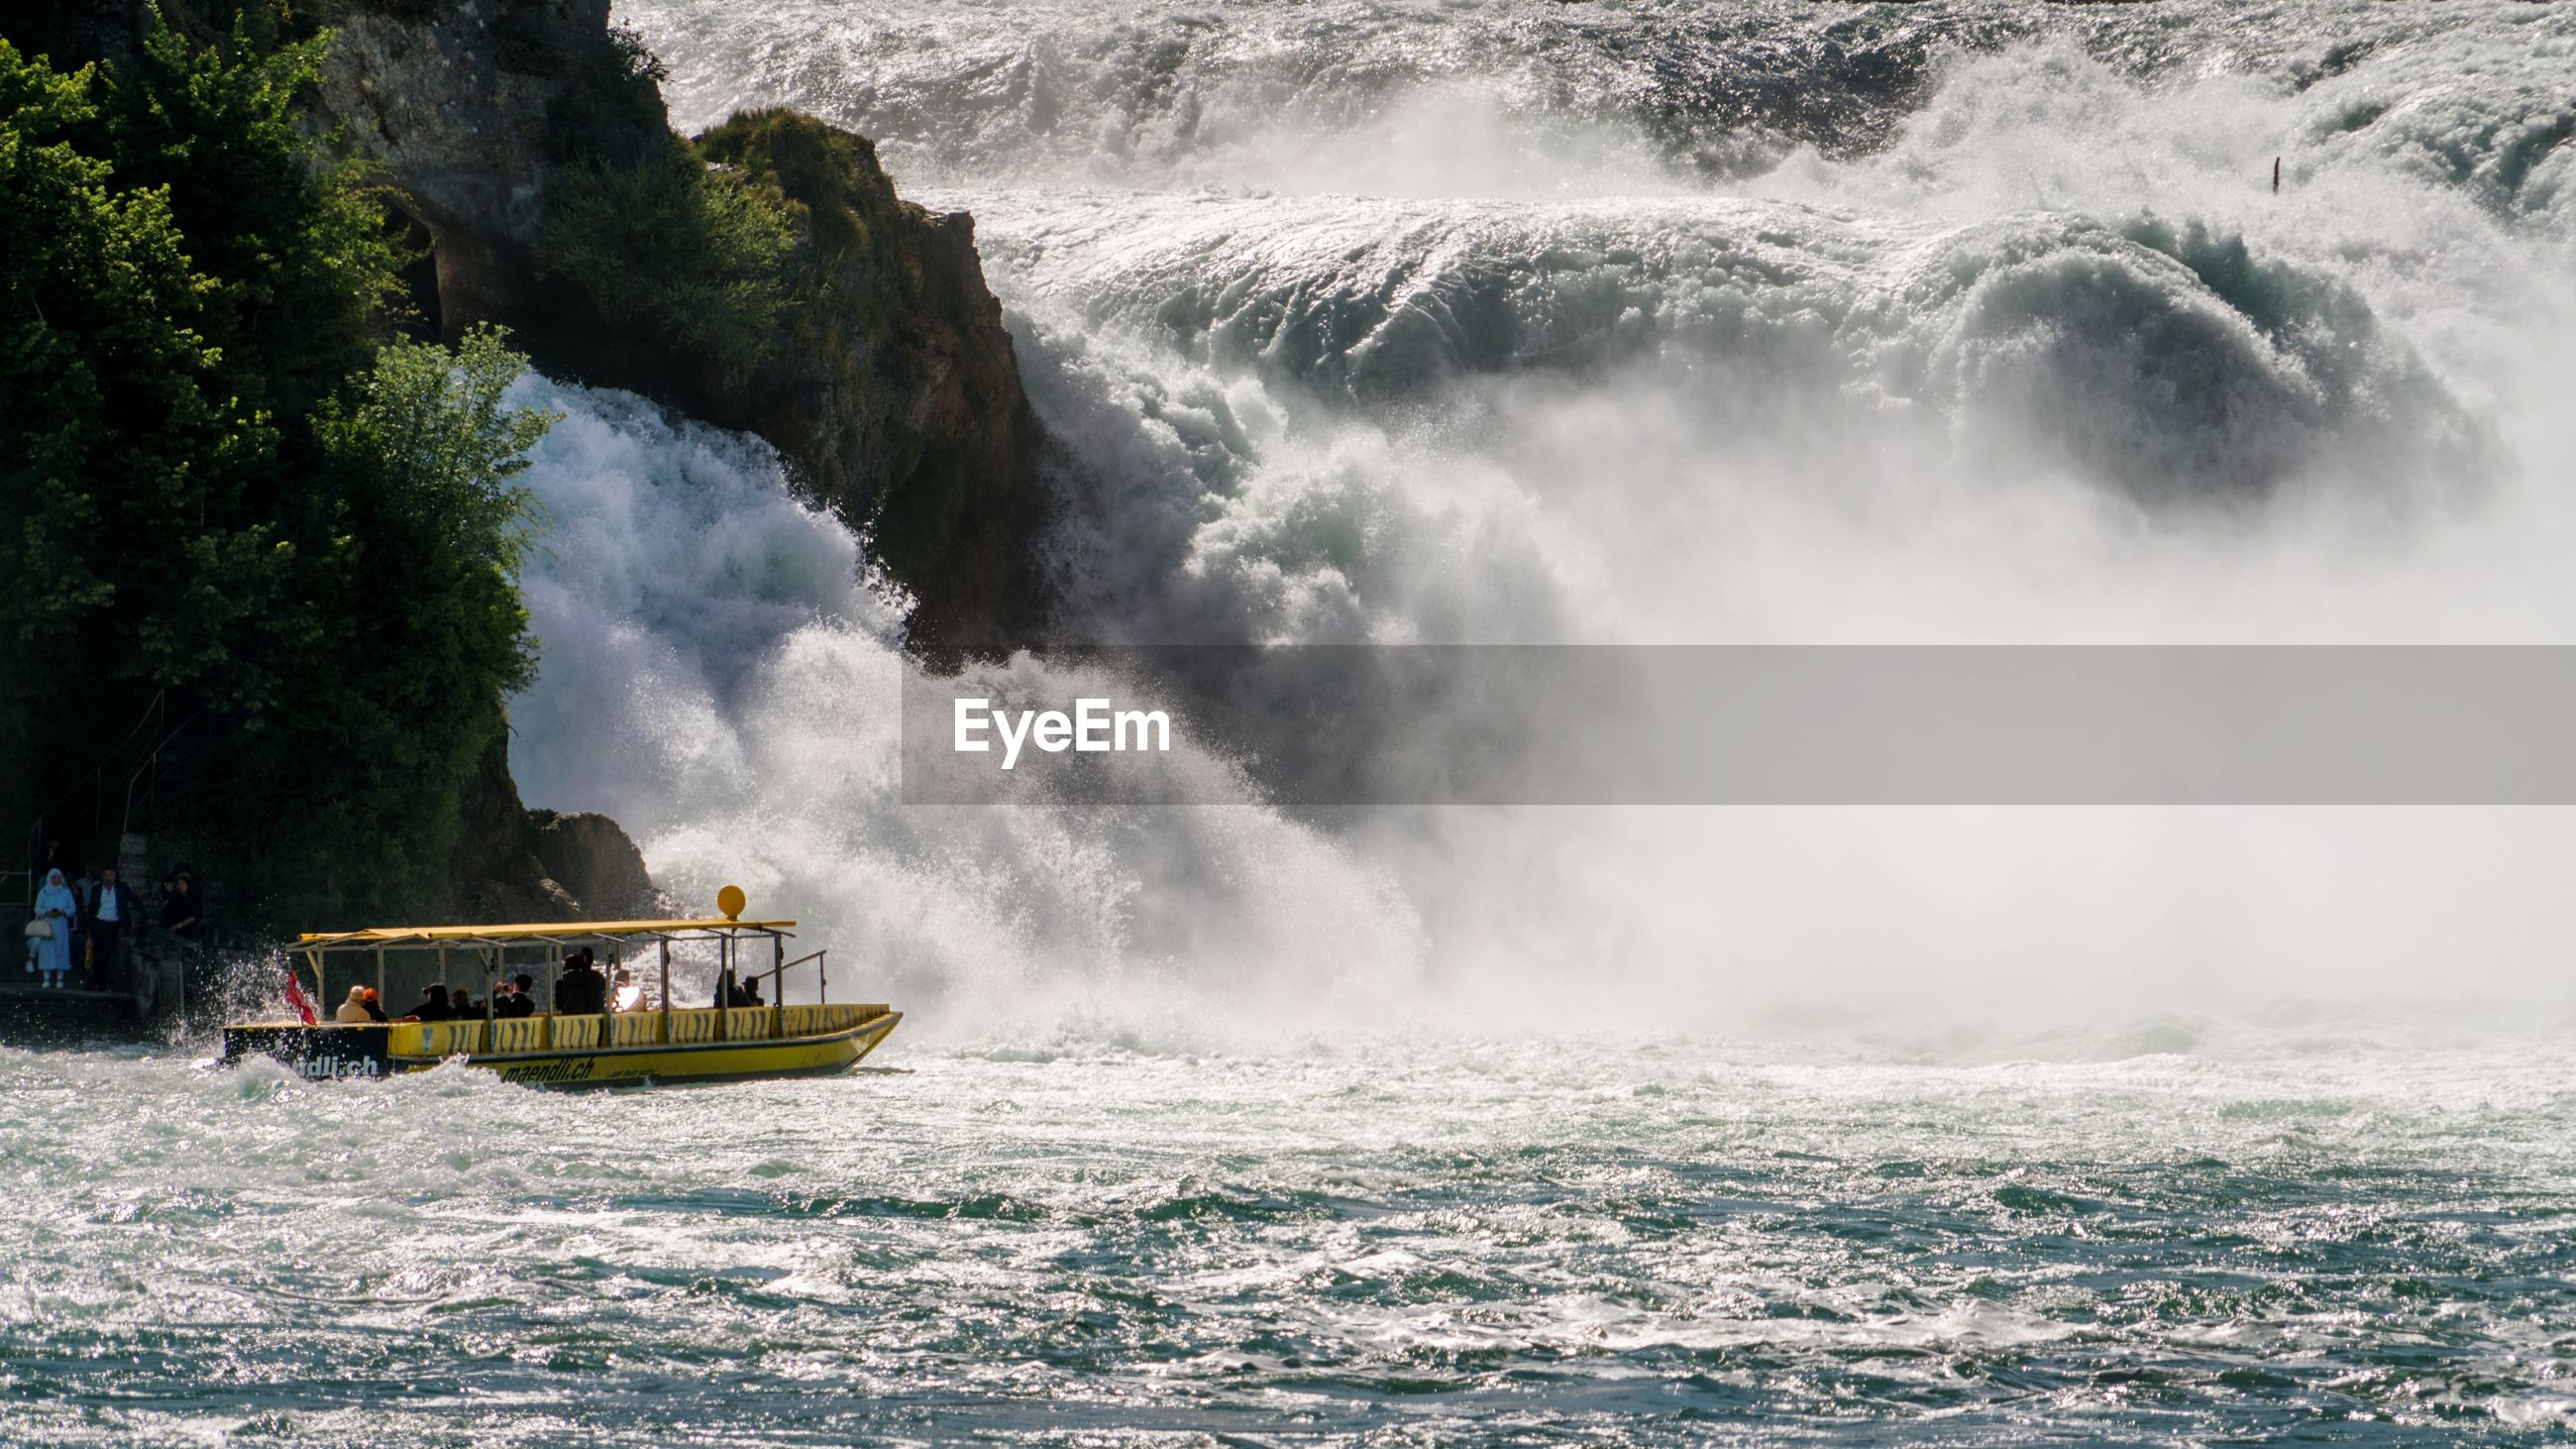 Ferry boat by waterfall in river